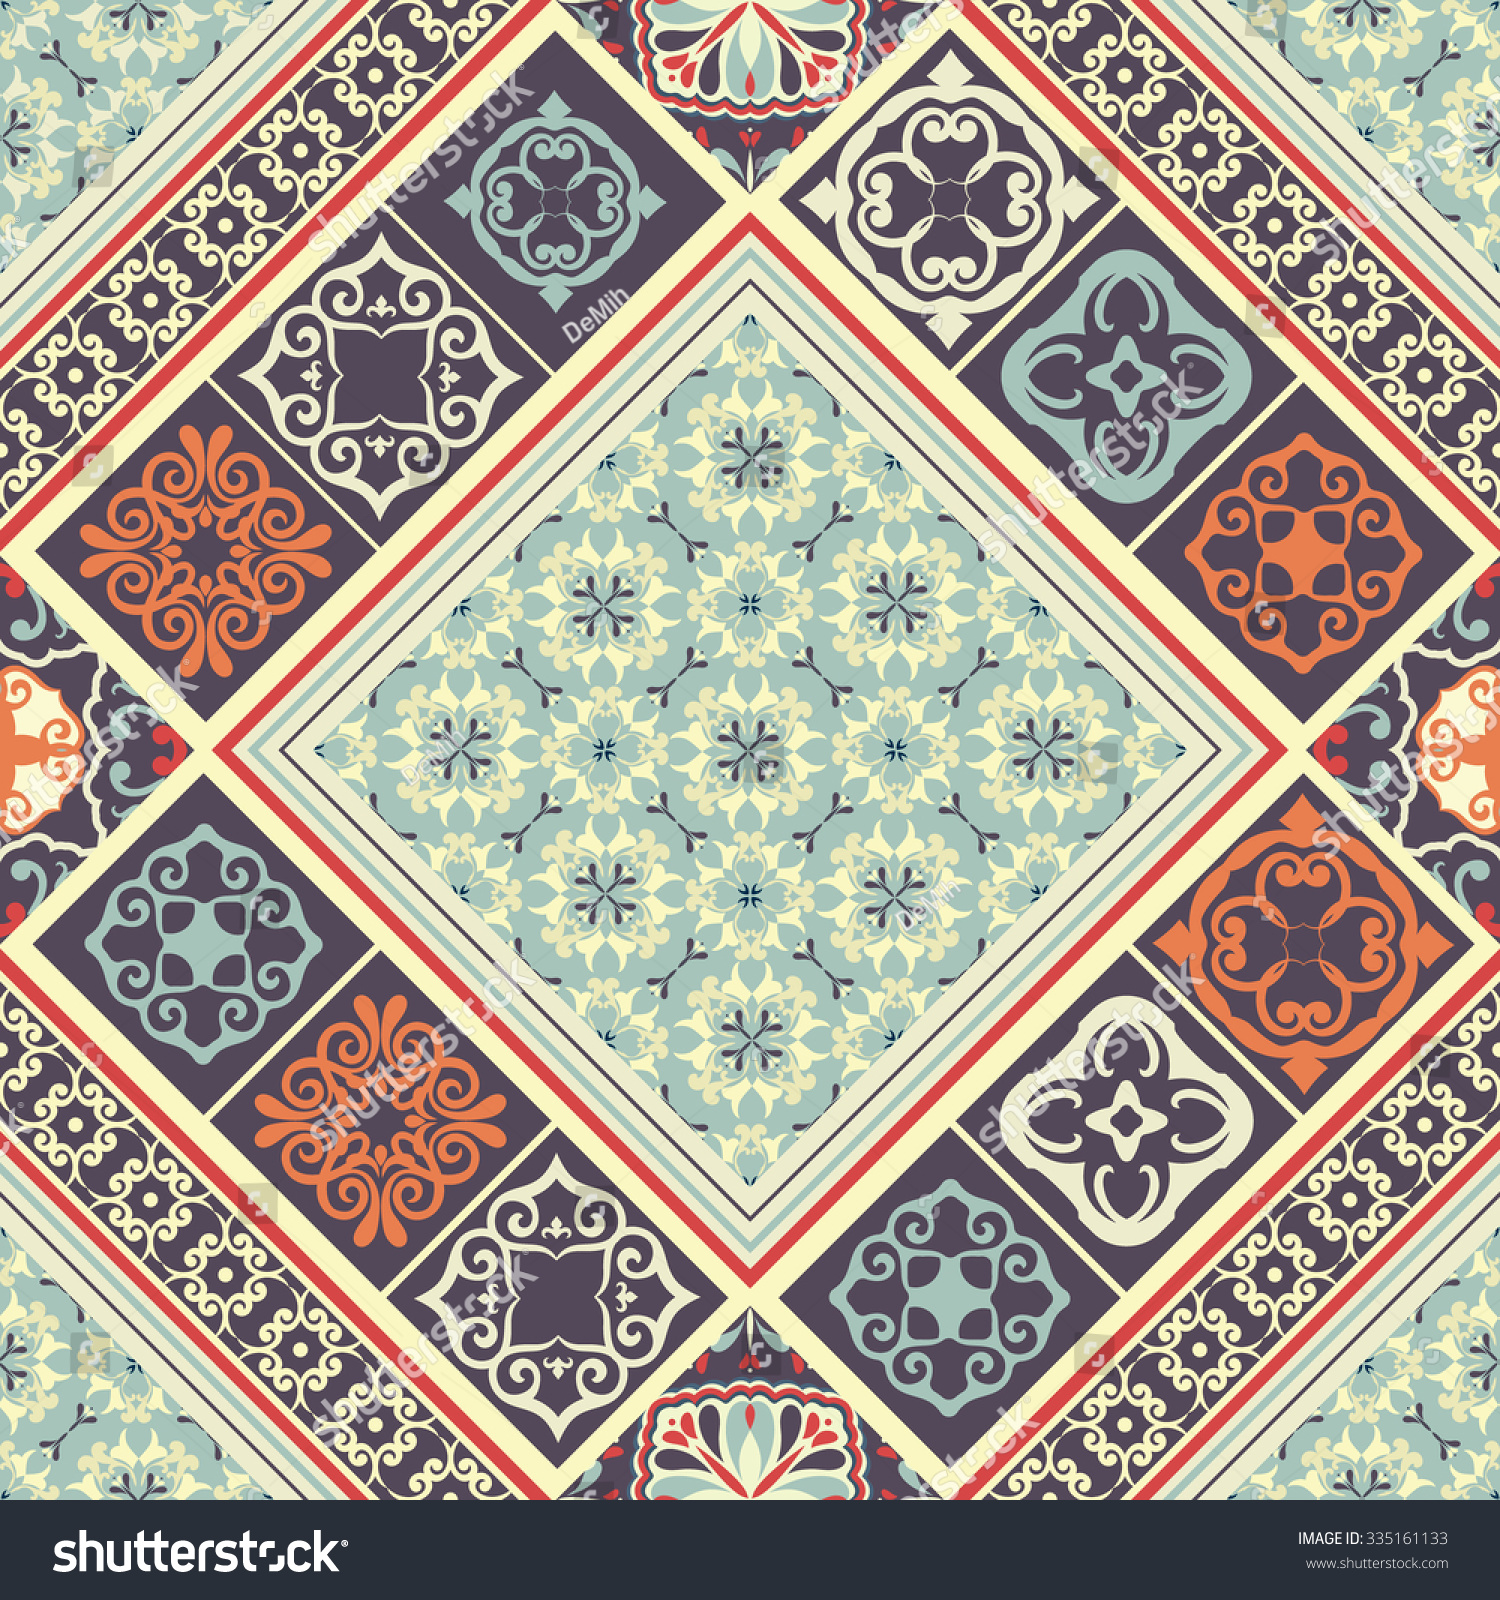 Tiles seamless pattern classic colored ceramic stock vector tiles seamless pattern with classic colored ceramic tiles dailygadgetfo Images